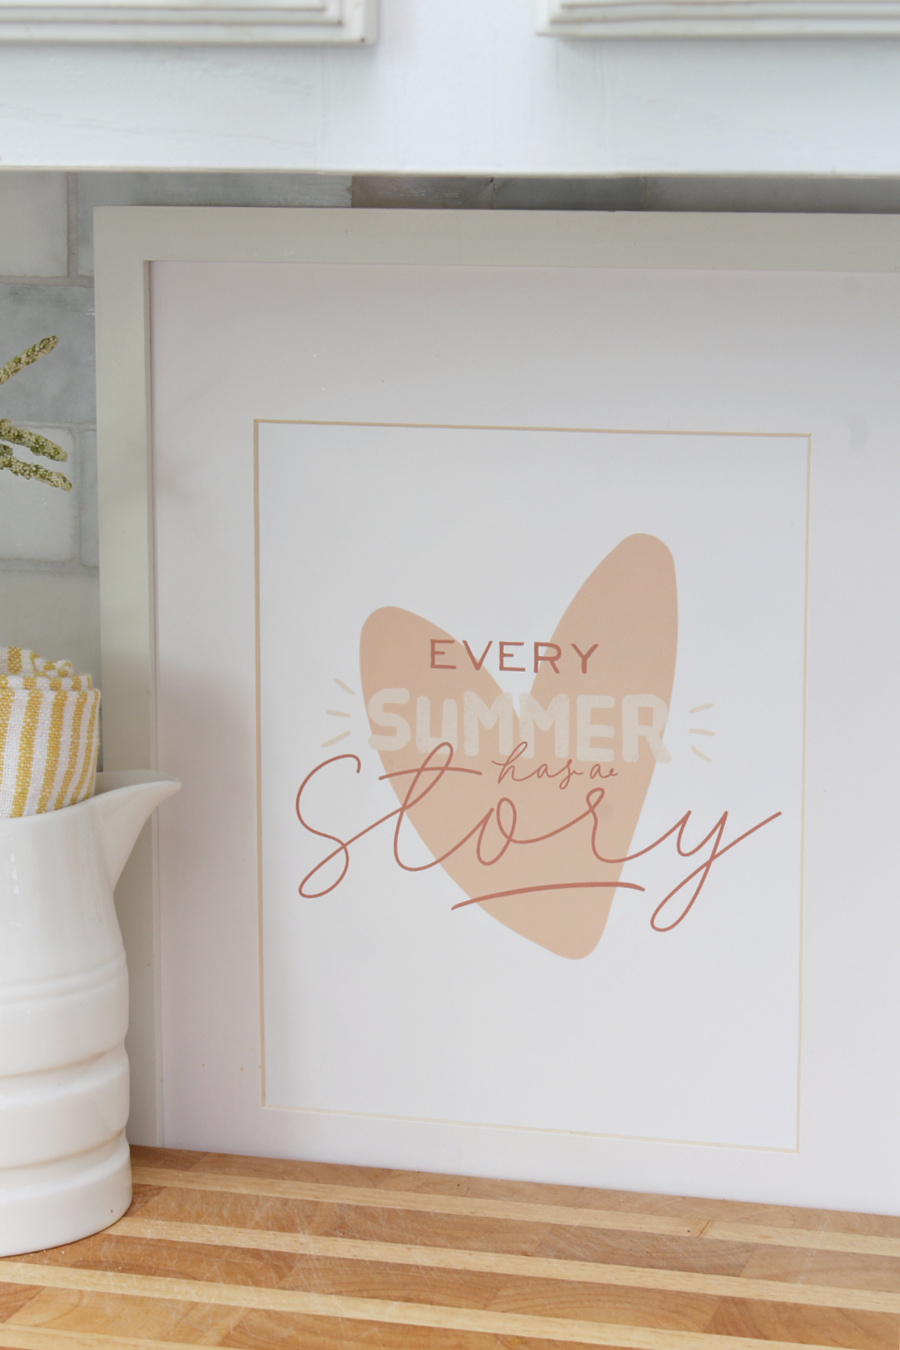 Every Summer Tells a Story free summer printable in a white frame.